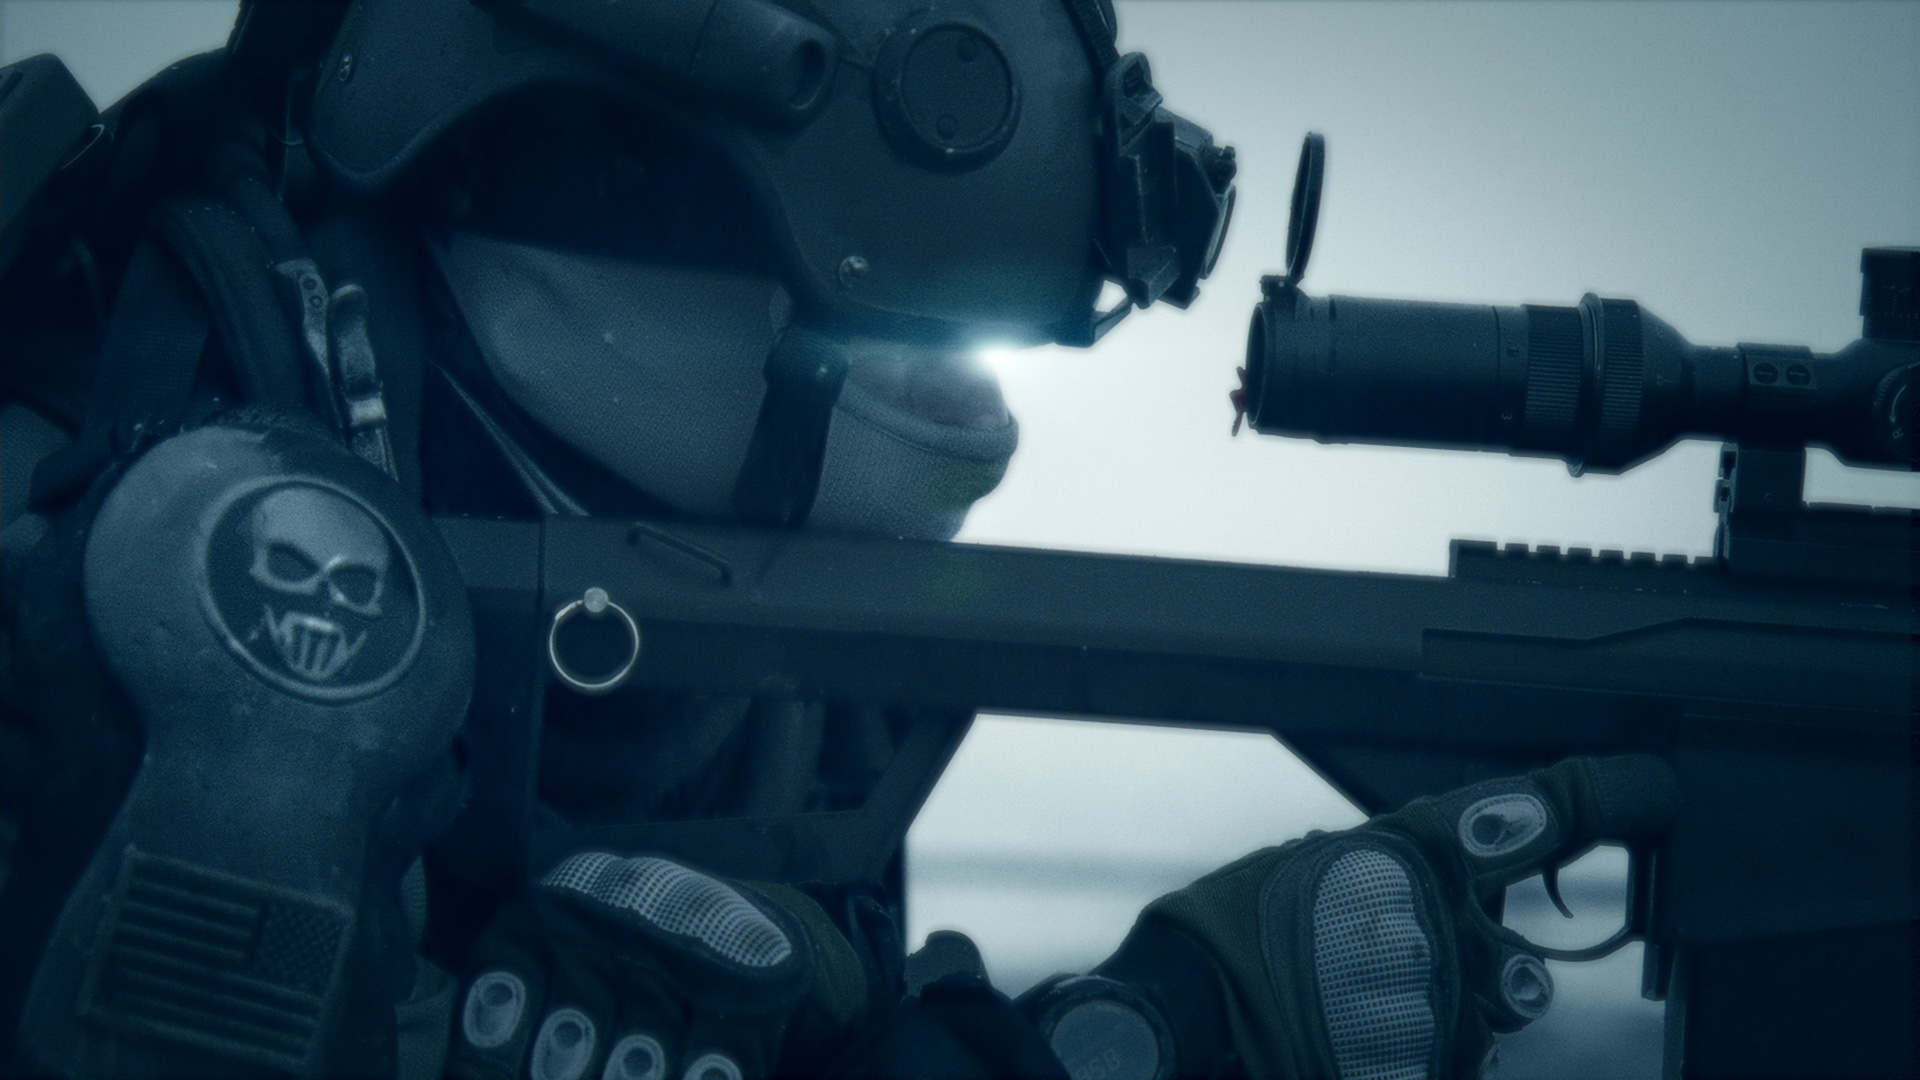 Ghost Recon: Future Soldier Wallpaper in 1920x1080